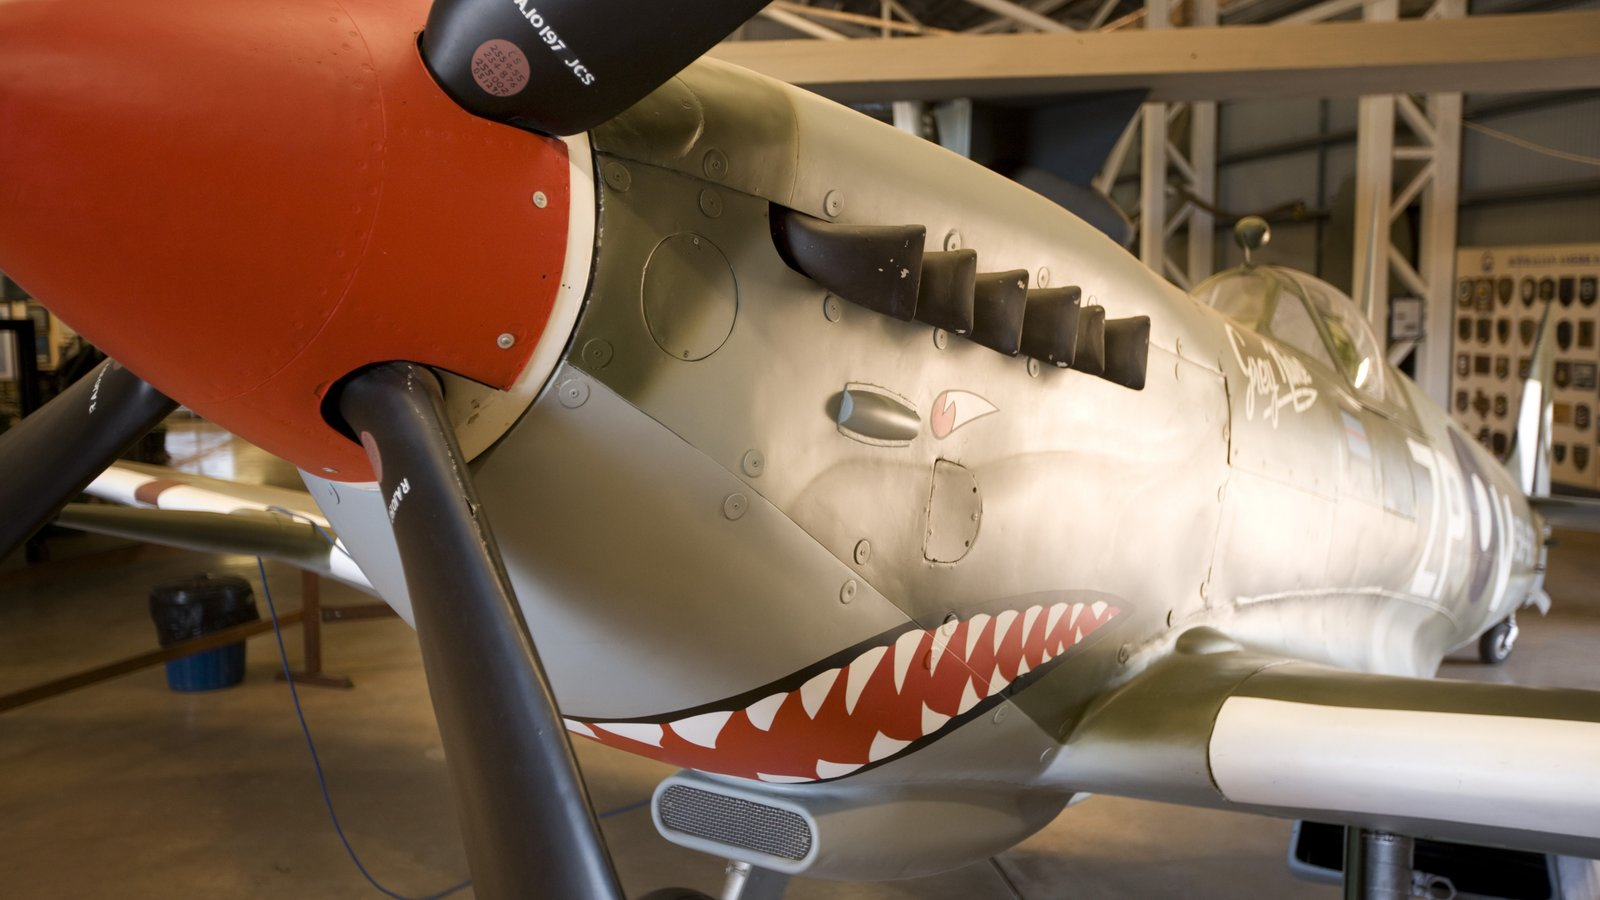 Australian Aviation Heritage Centre showing aircraft